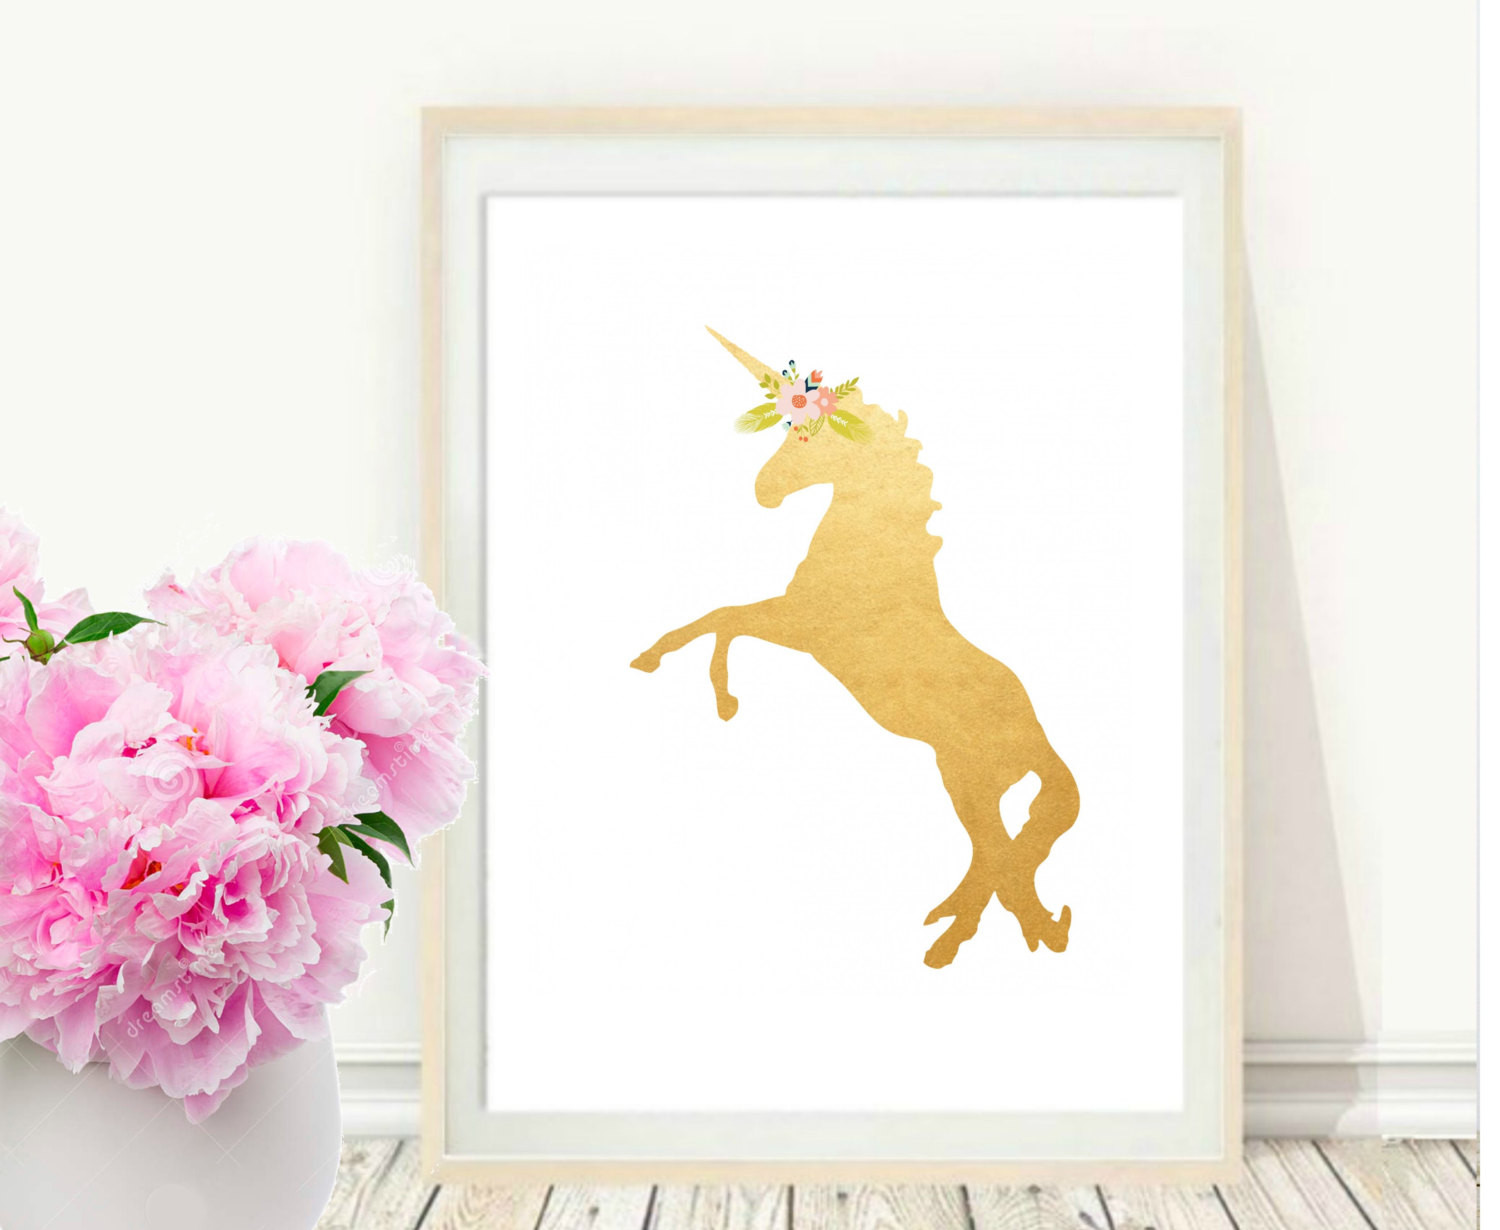 Best ideas about Unicorn Wall Art . Save or Pin Unicorn Print Printable Art Gold Unicorn Unicorn Wall Art Now.